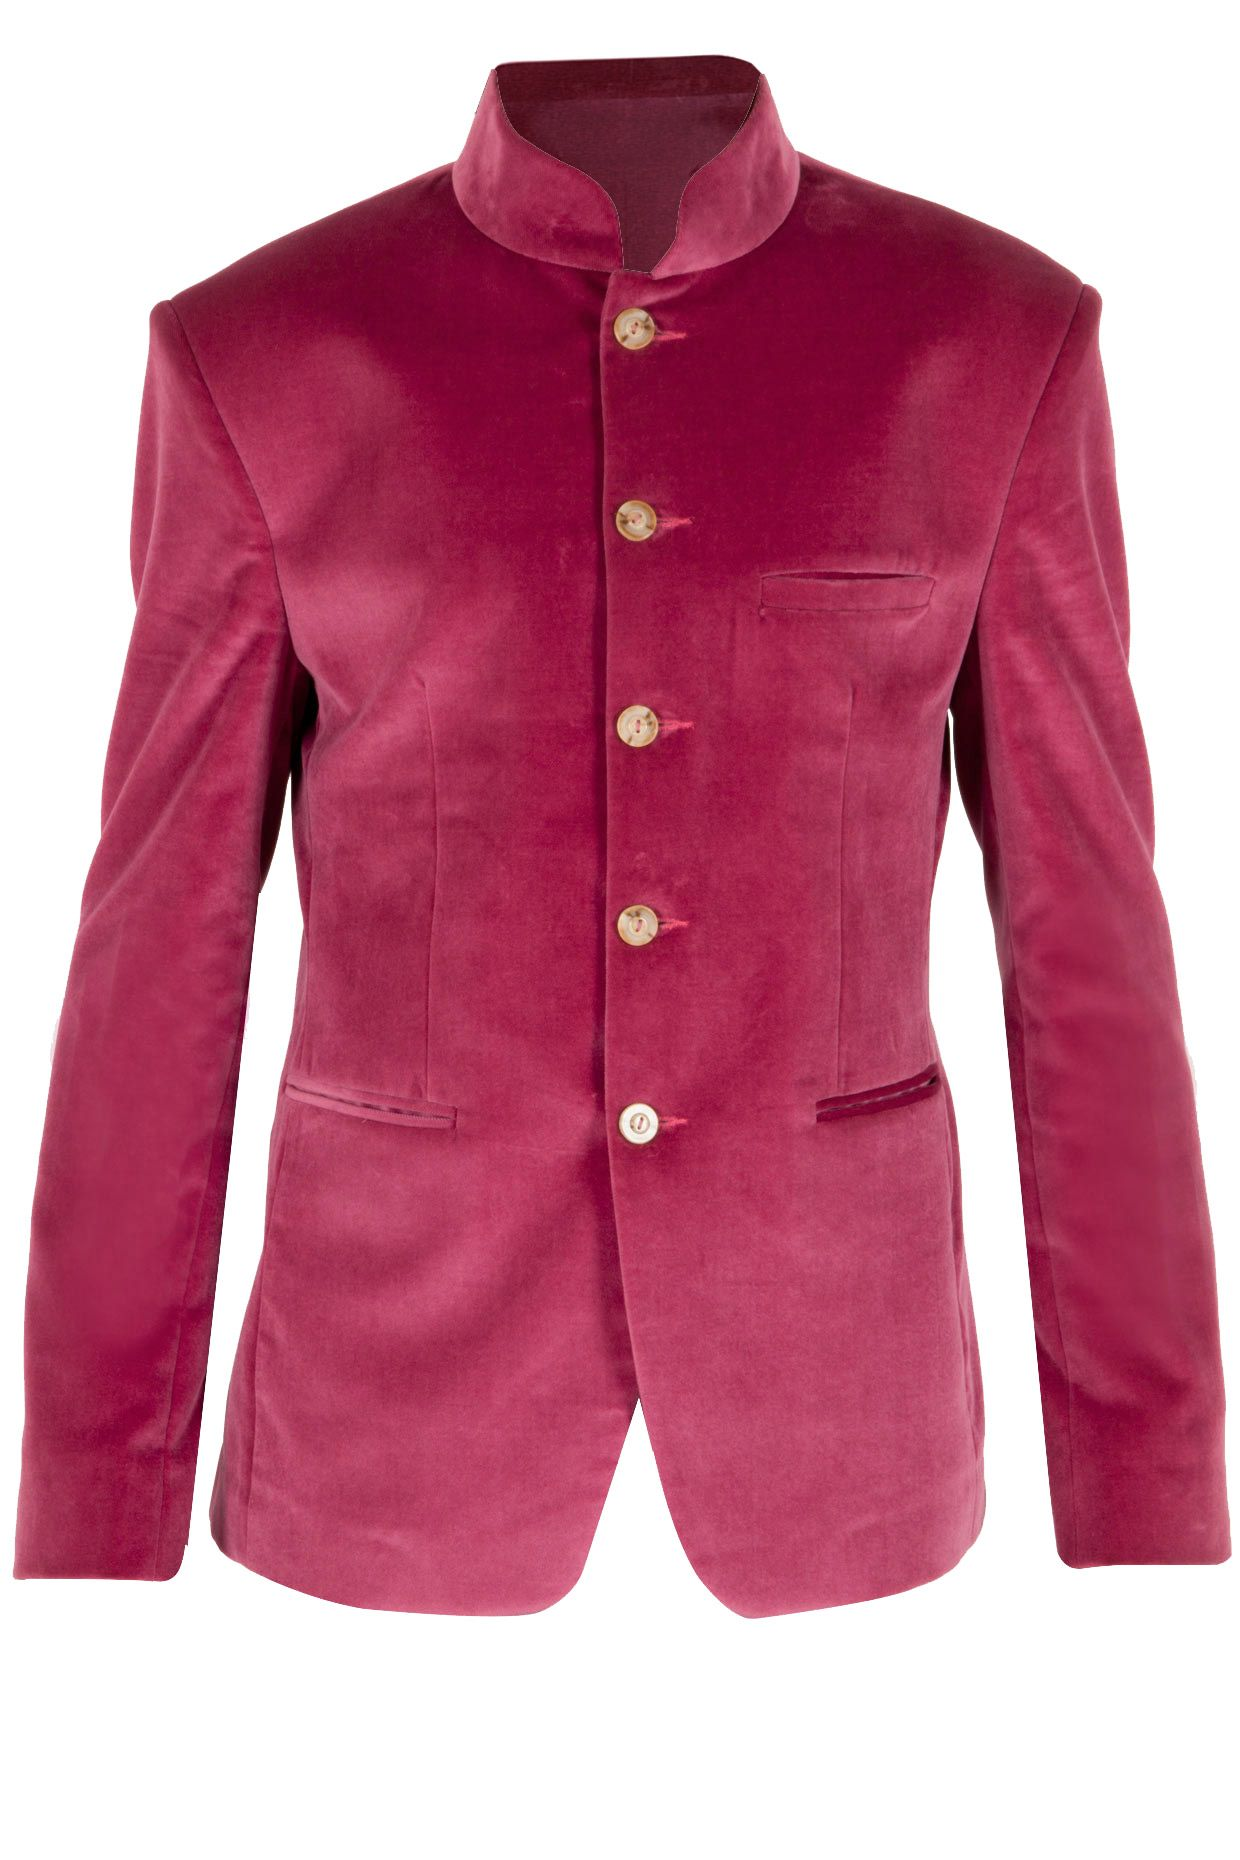 1173f54b8573 Pink velvet bandhgala jacket available only at Pernia's Pop-Up Shop ...